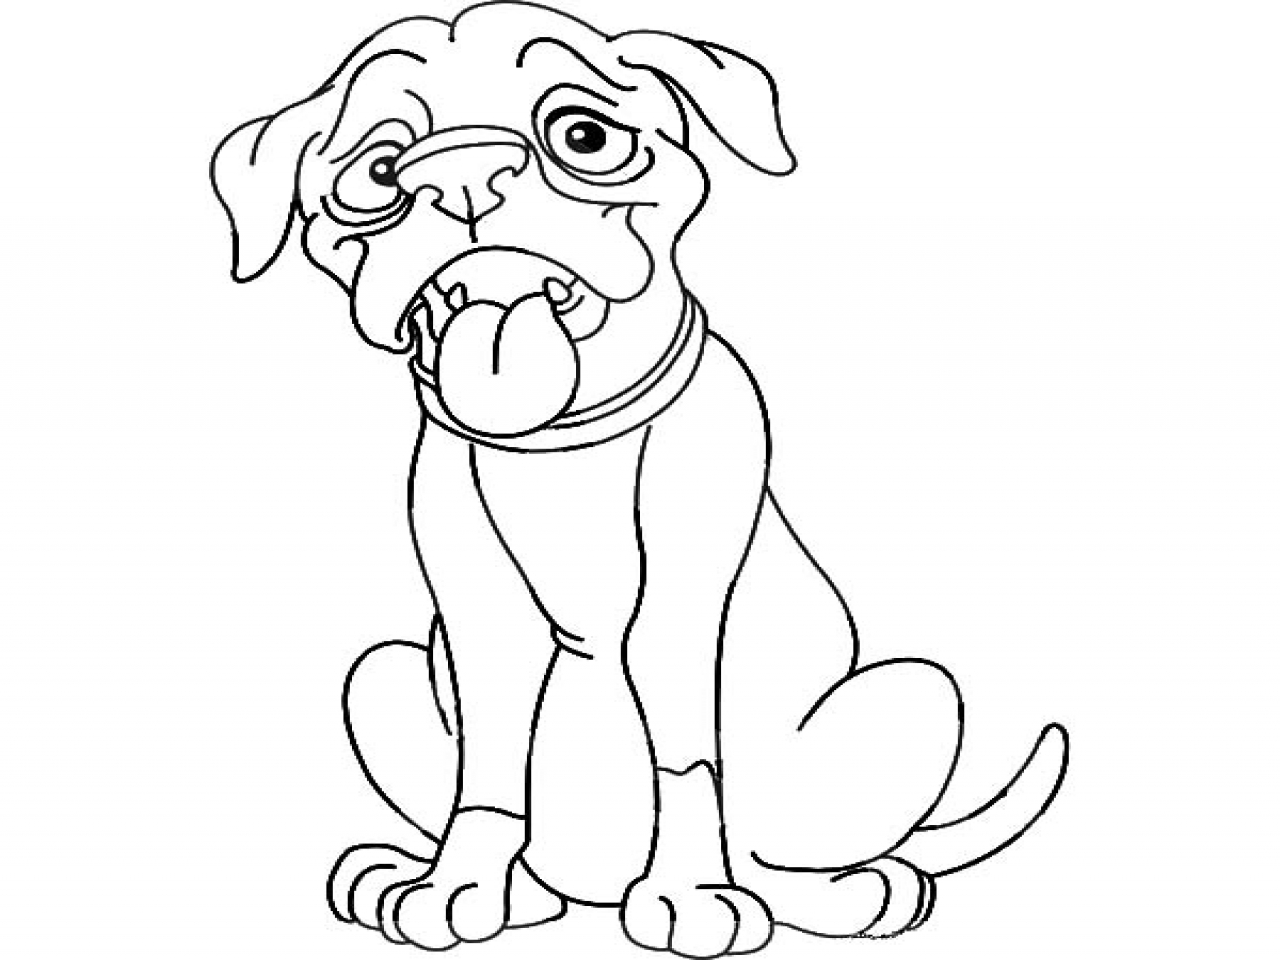 Boxer Dog Drawing at GetDrawings.com | Free for personal use Boxer ...